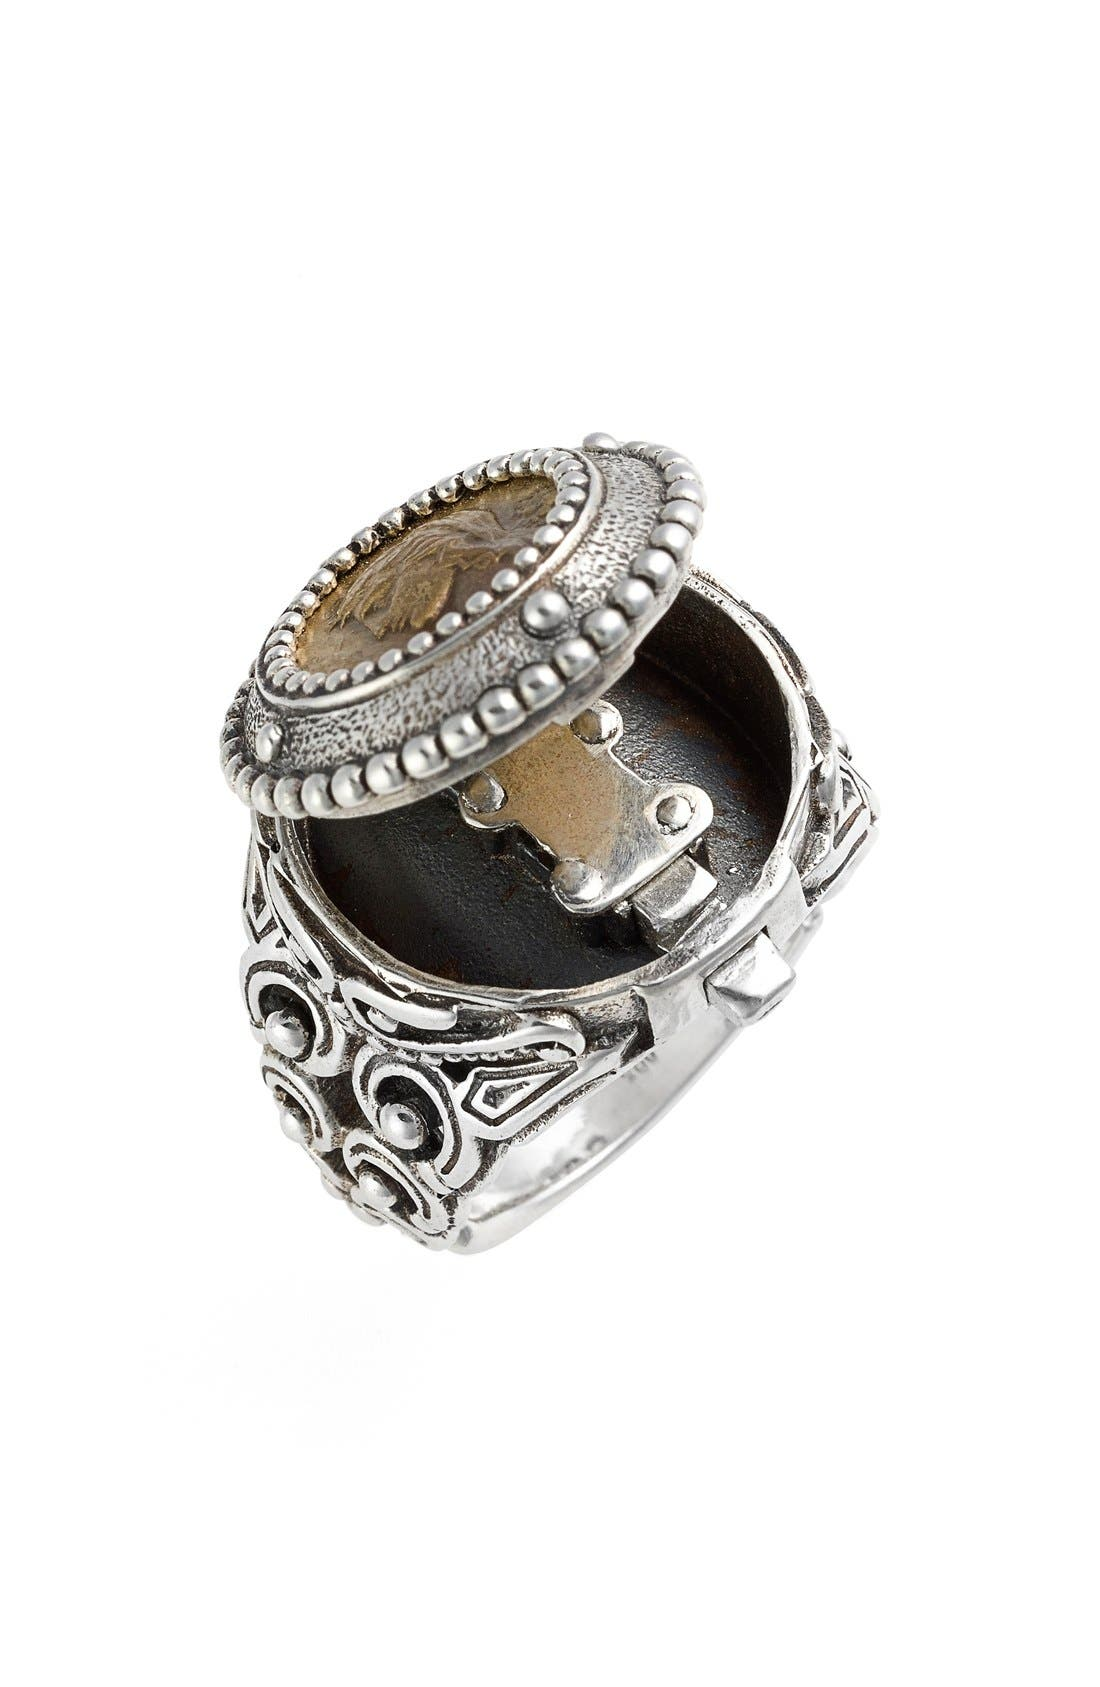 'Arethusa' Hinged Coin Ring,                             Alternate thumbnail 2, color,                             Silver/ Bronze